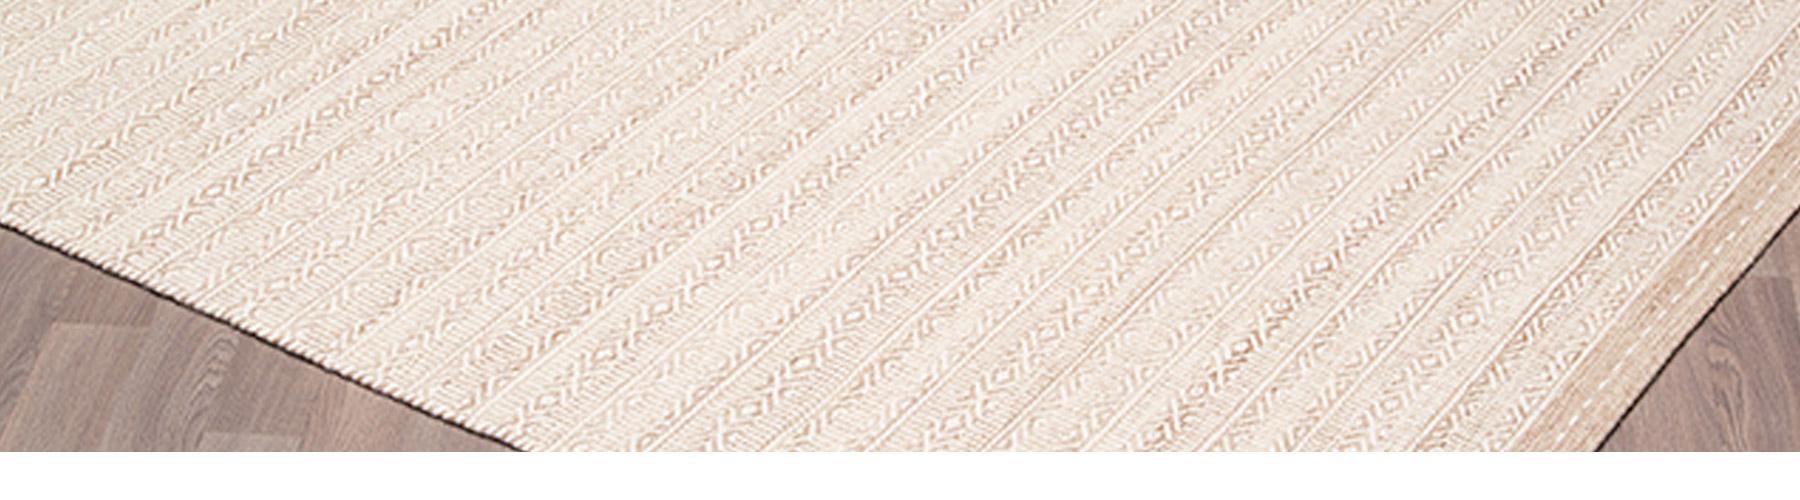 Parague Ivoire Beige - Carpette Tapis William